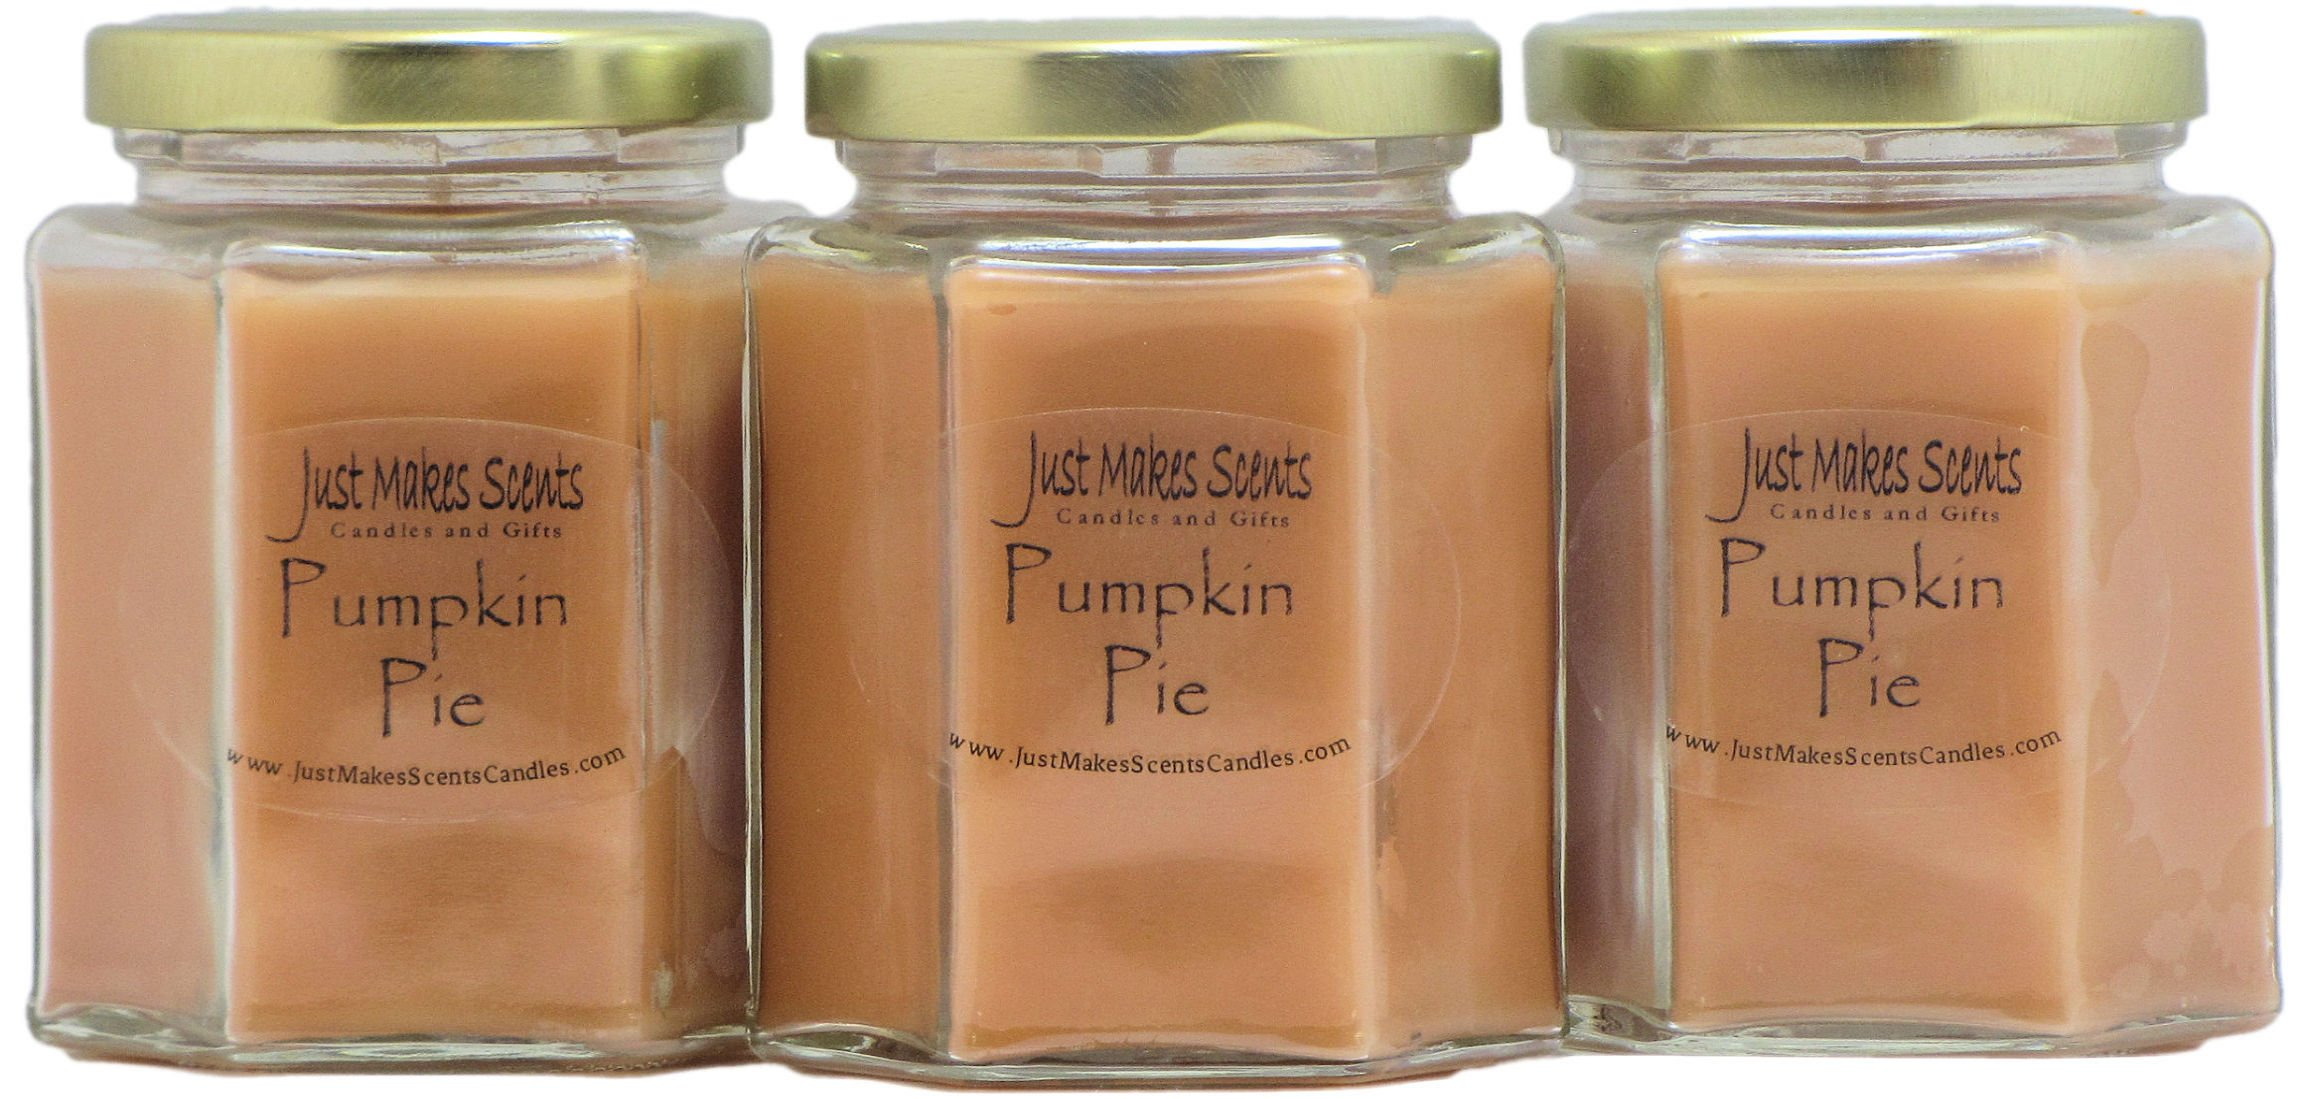 3 Pack - Pumpkin Pie Scented Blended Soy Candle | Hand Poured Fall Fragrance Candles | Made in The USA by Just Makes Scents by Just Makes Scents Candles & Gifts